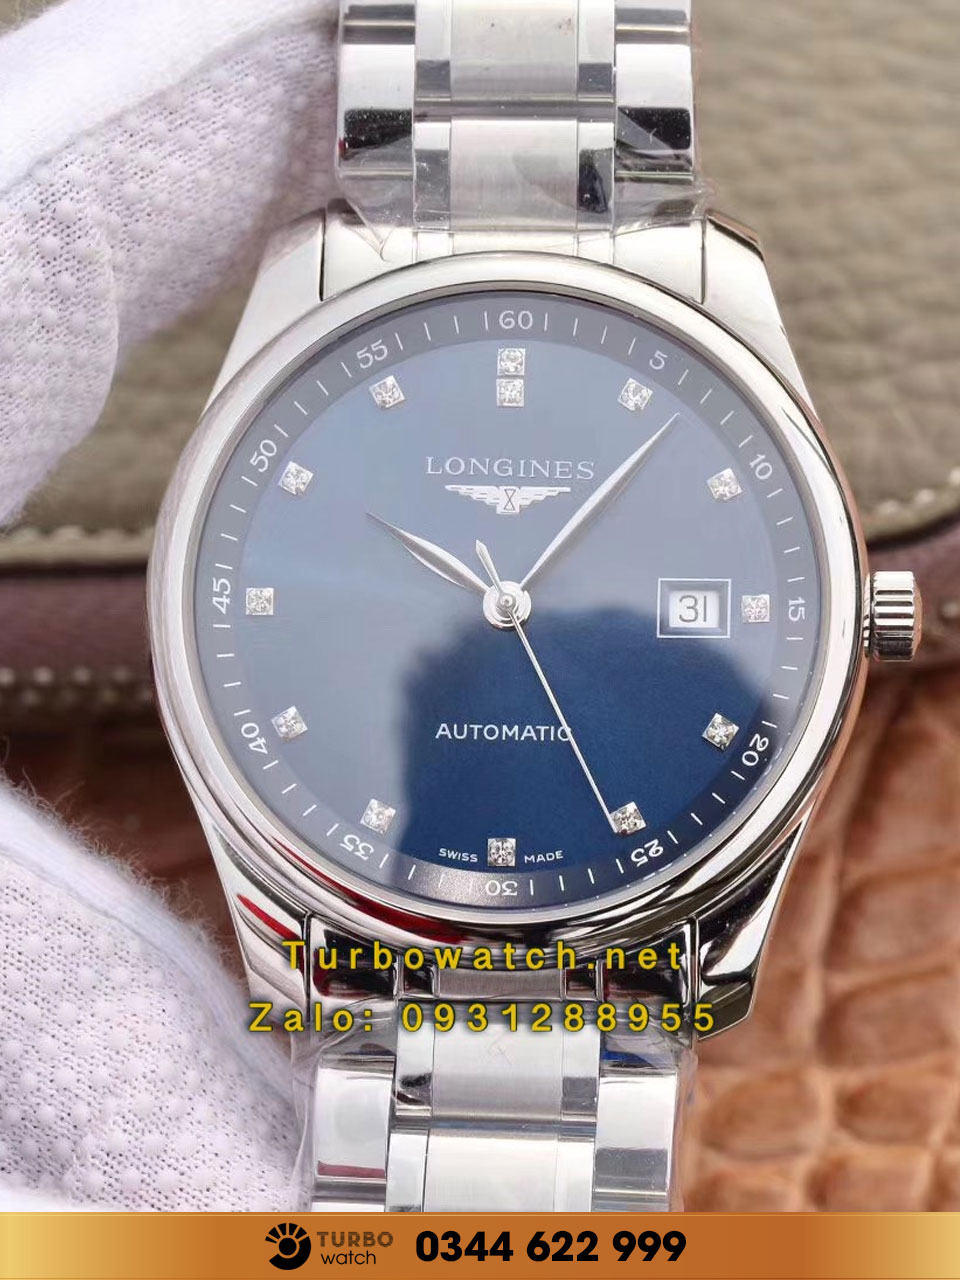 LONGINES MASTER COLLECTION 38MM BLUE DIAL AUTOMATIC replica 1-1 cao cấp